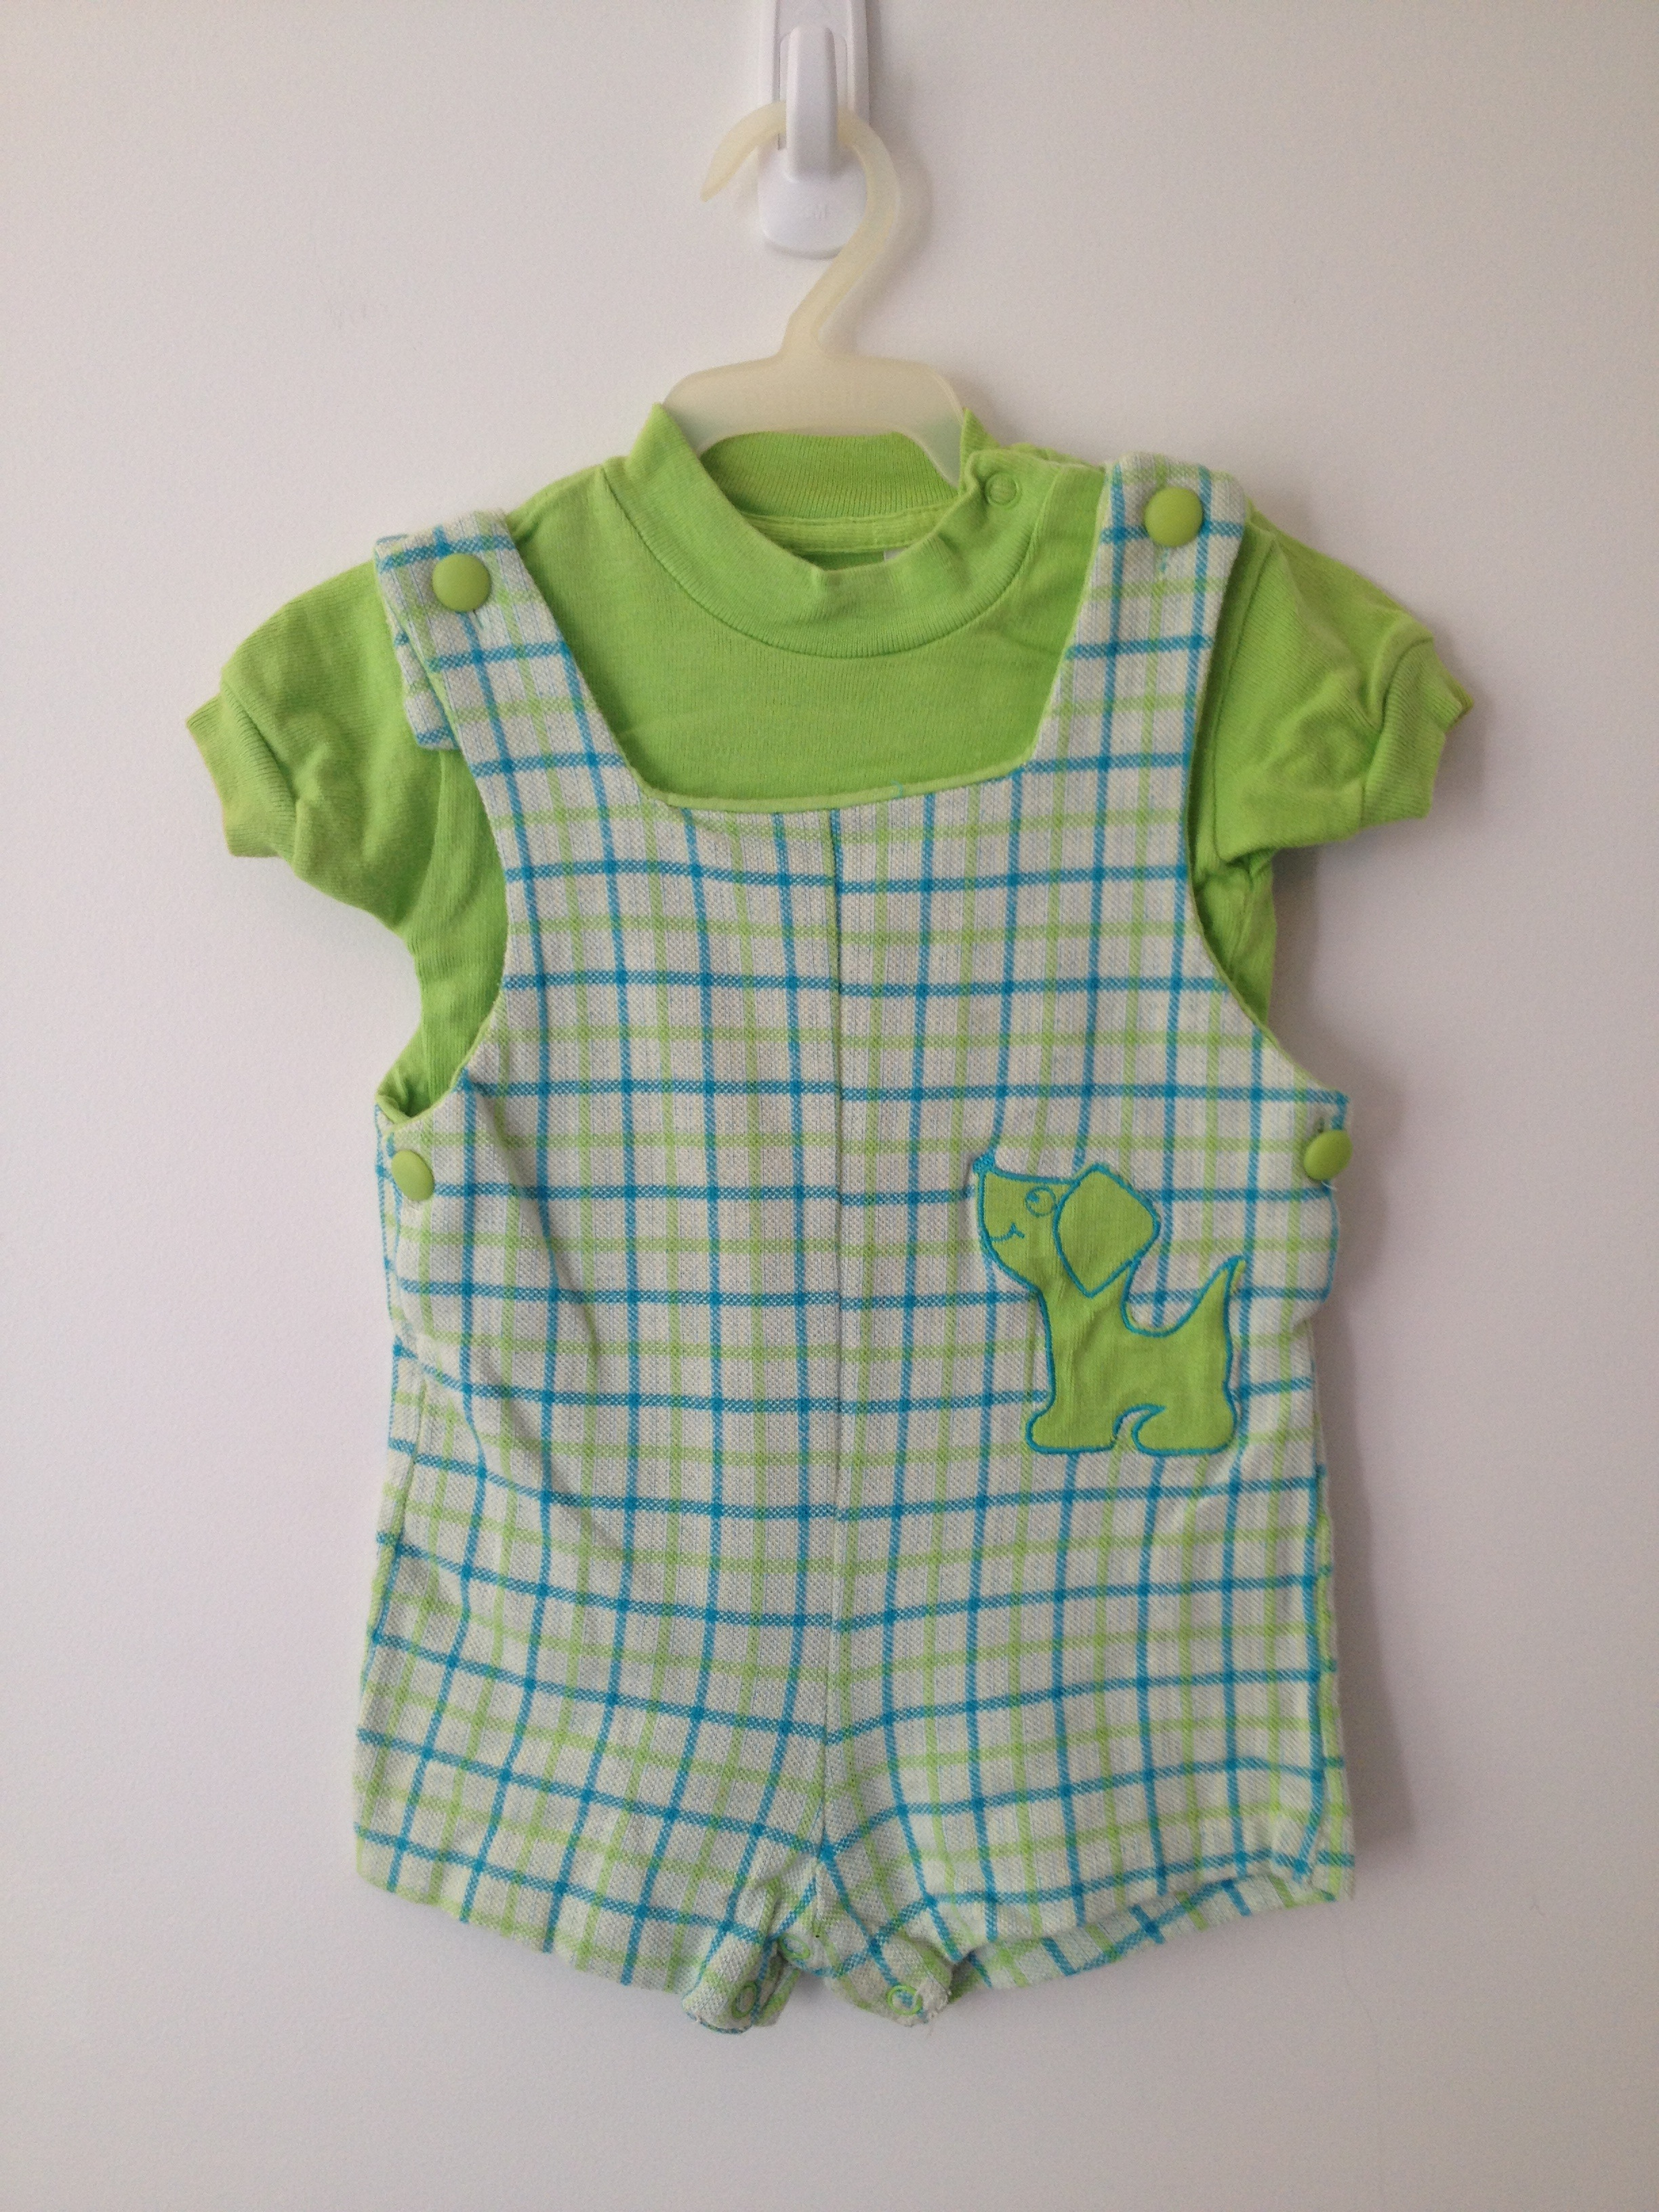 vintage 60s baby plaid puppy blue green romper tshirt set sz 12 mo